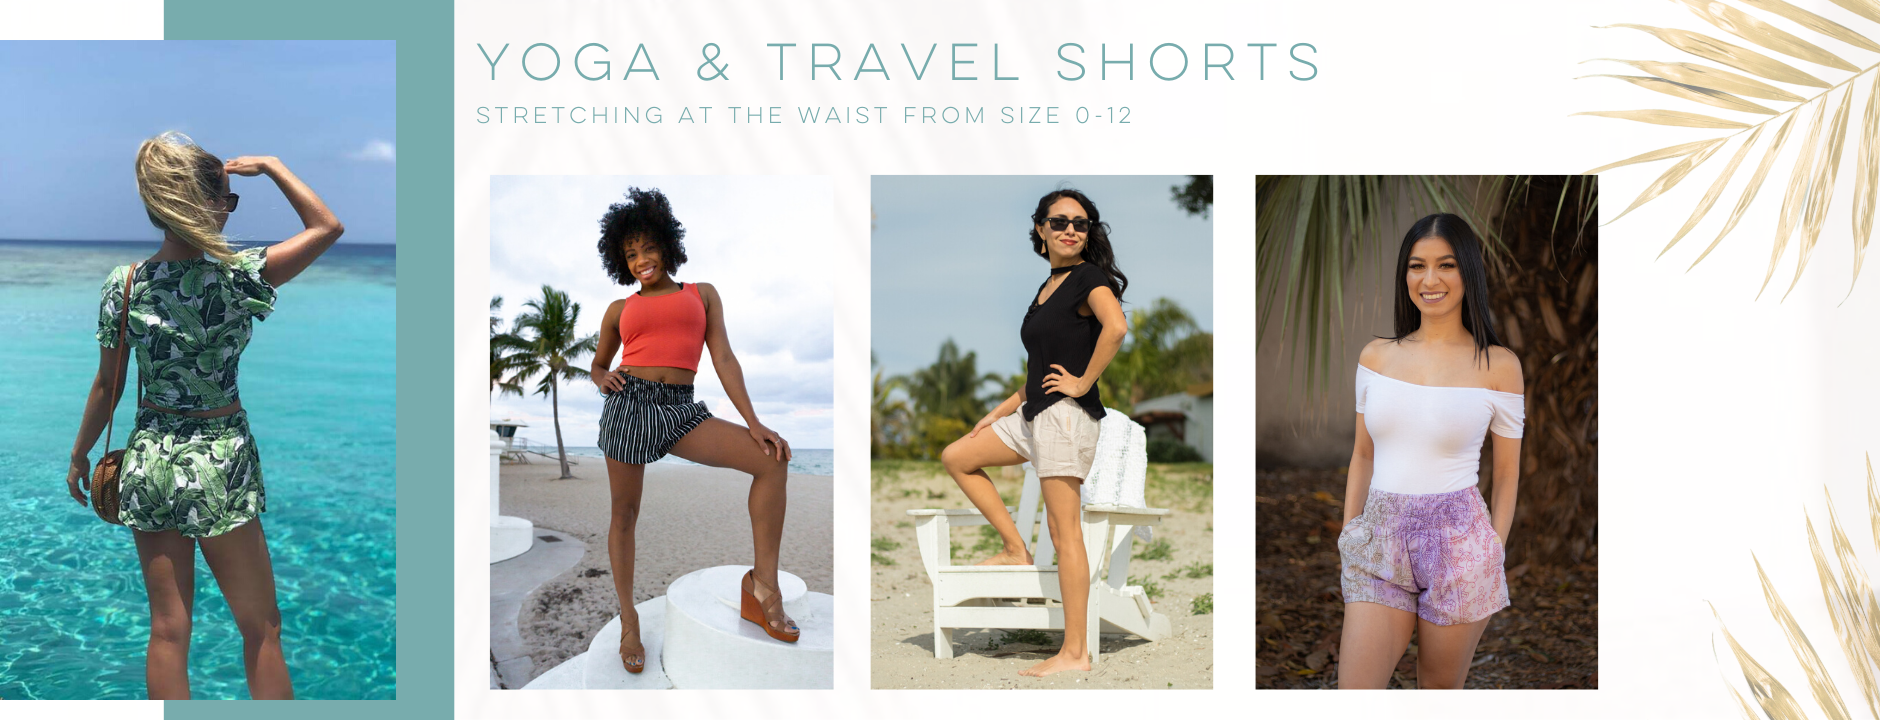 PIYOGA Shop All Womens Shorts size 0-12